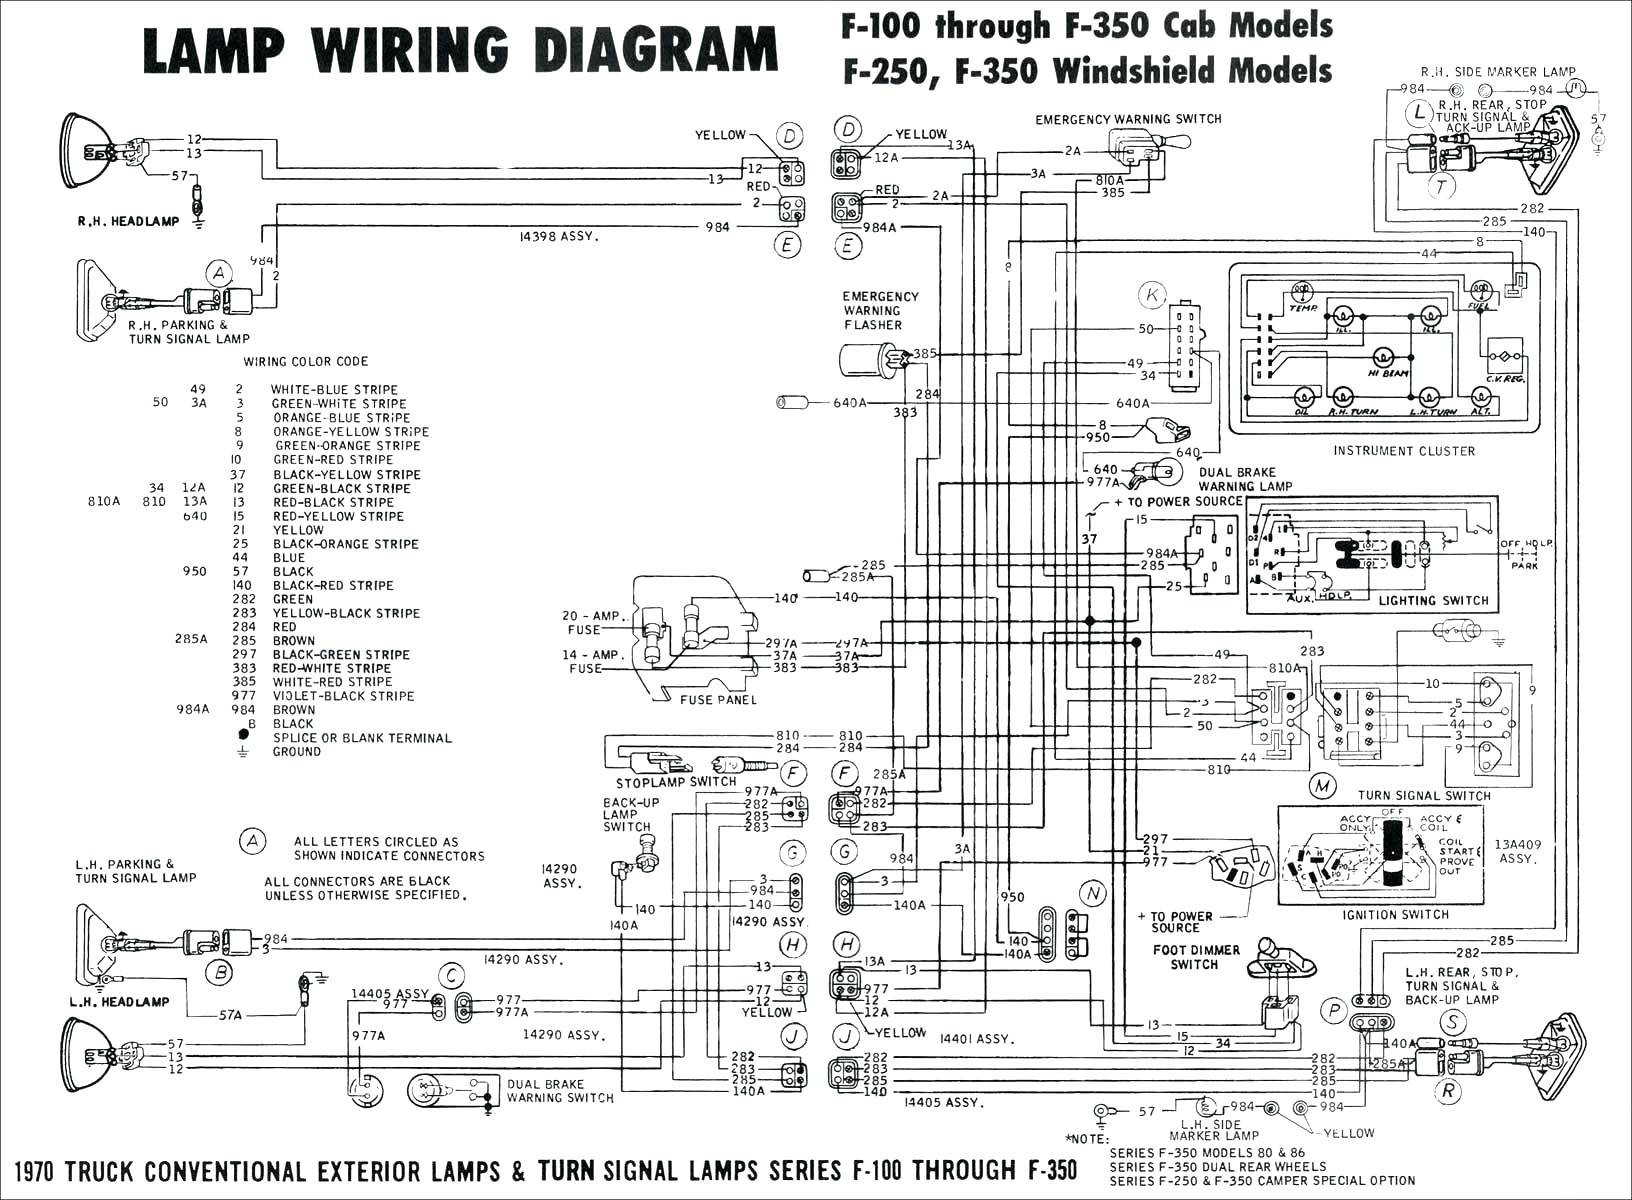 Boat Trailer Wiring Schematic 5 Wire Auto Electrical Diagram Toyota Camry Related With